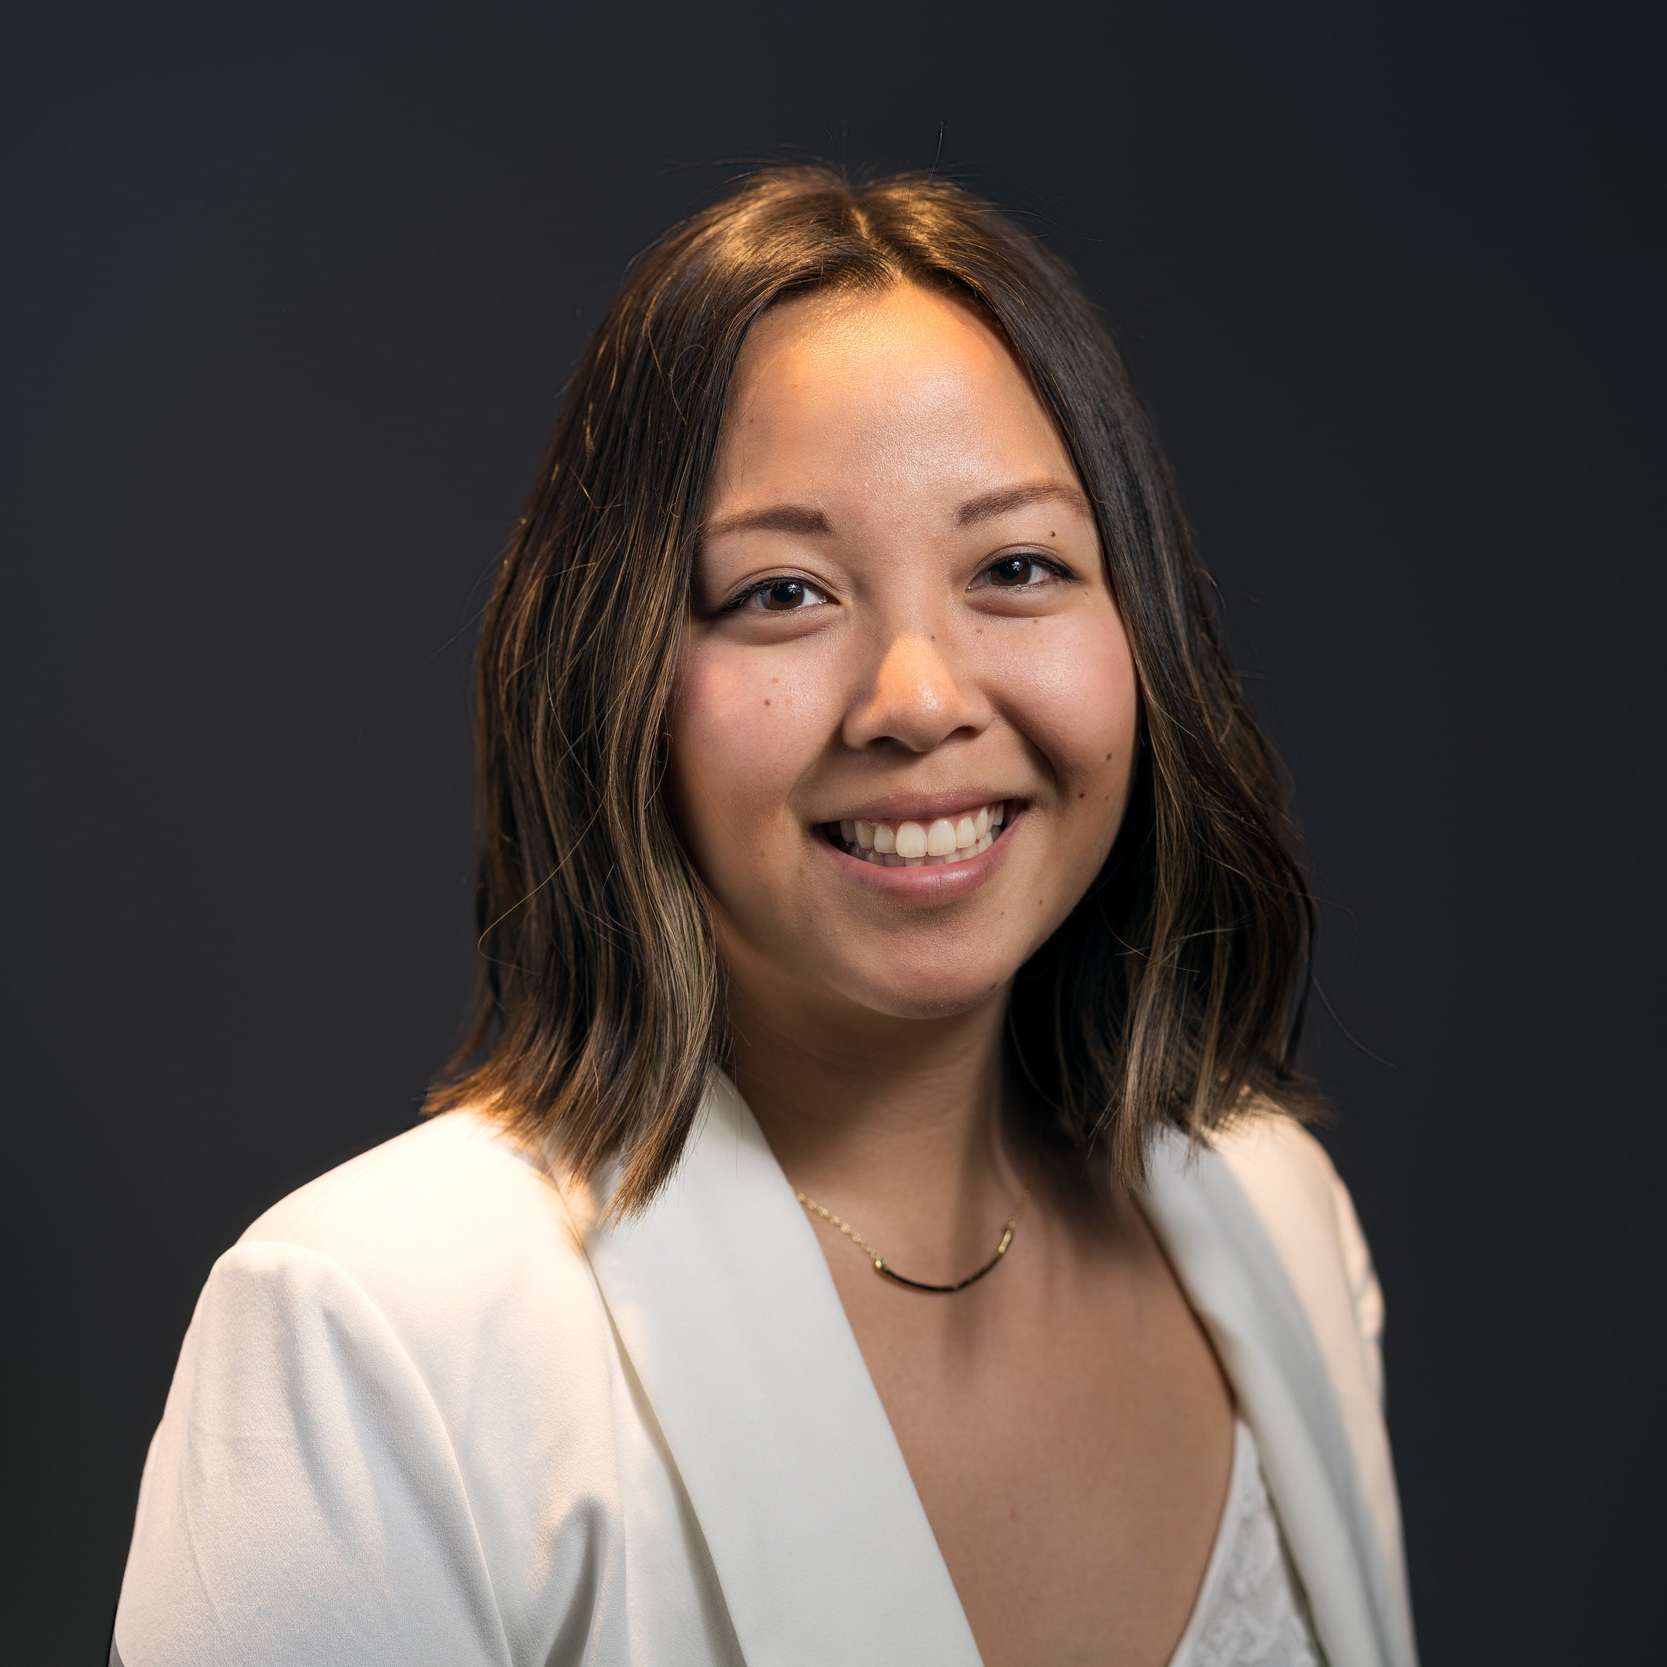 Victoria Wang - Manager of Knowledge Transfer